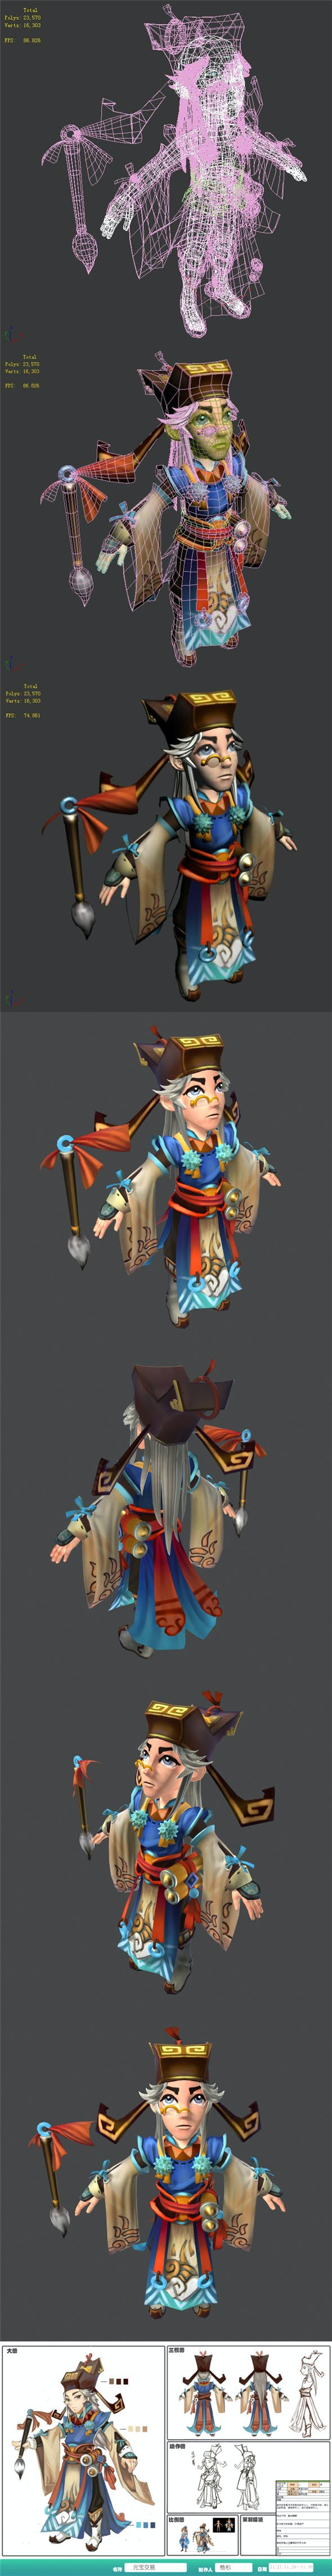 Game characters - ingot trading notary - 3DOcean Item for Sale